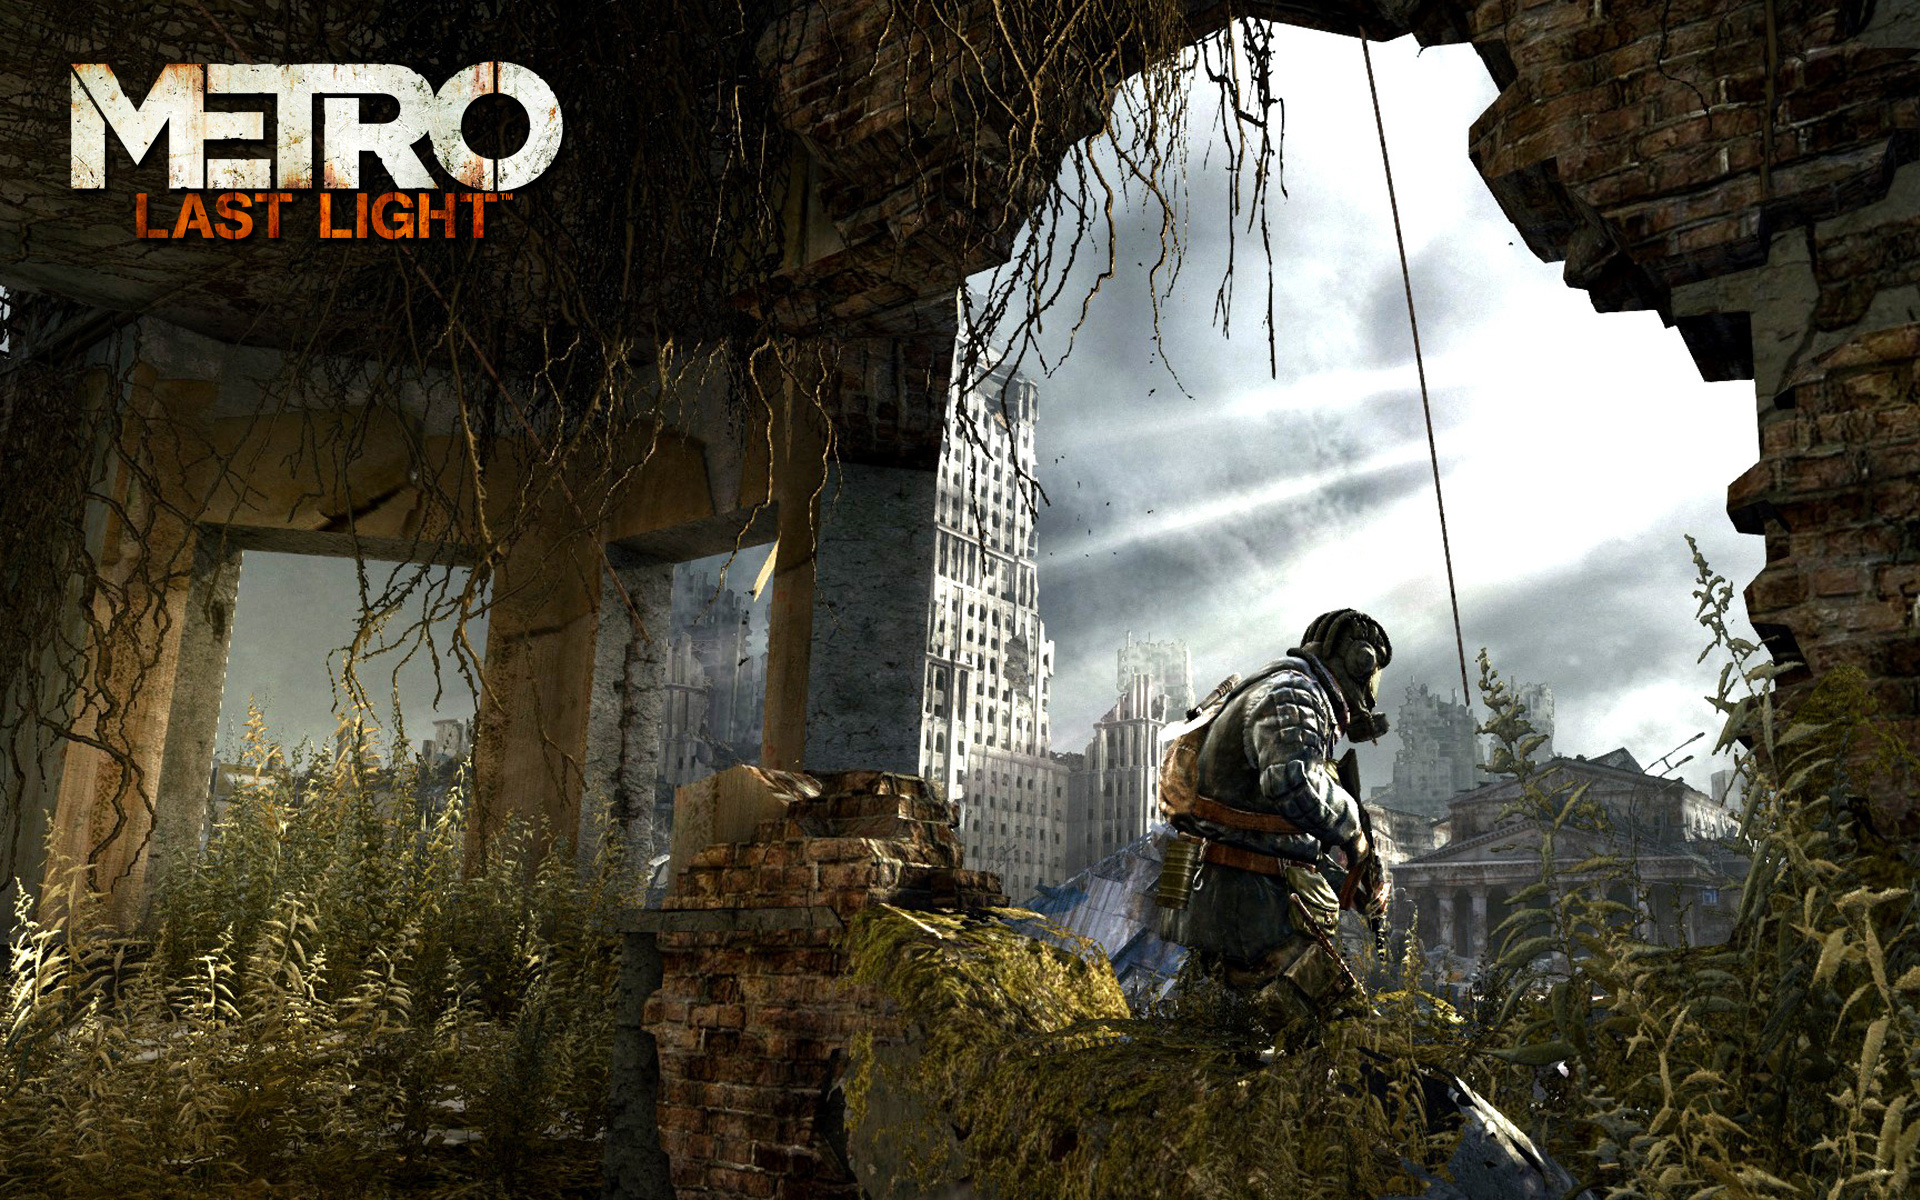 metro-last-light-screenshot-2012-01-1920x1200.jpg